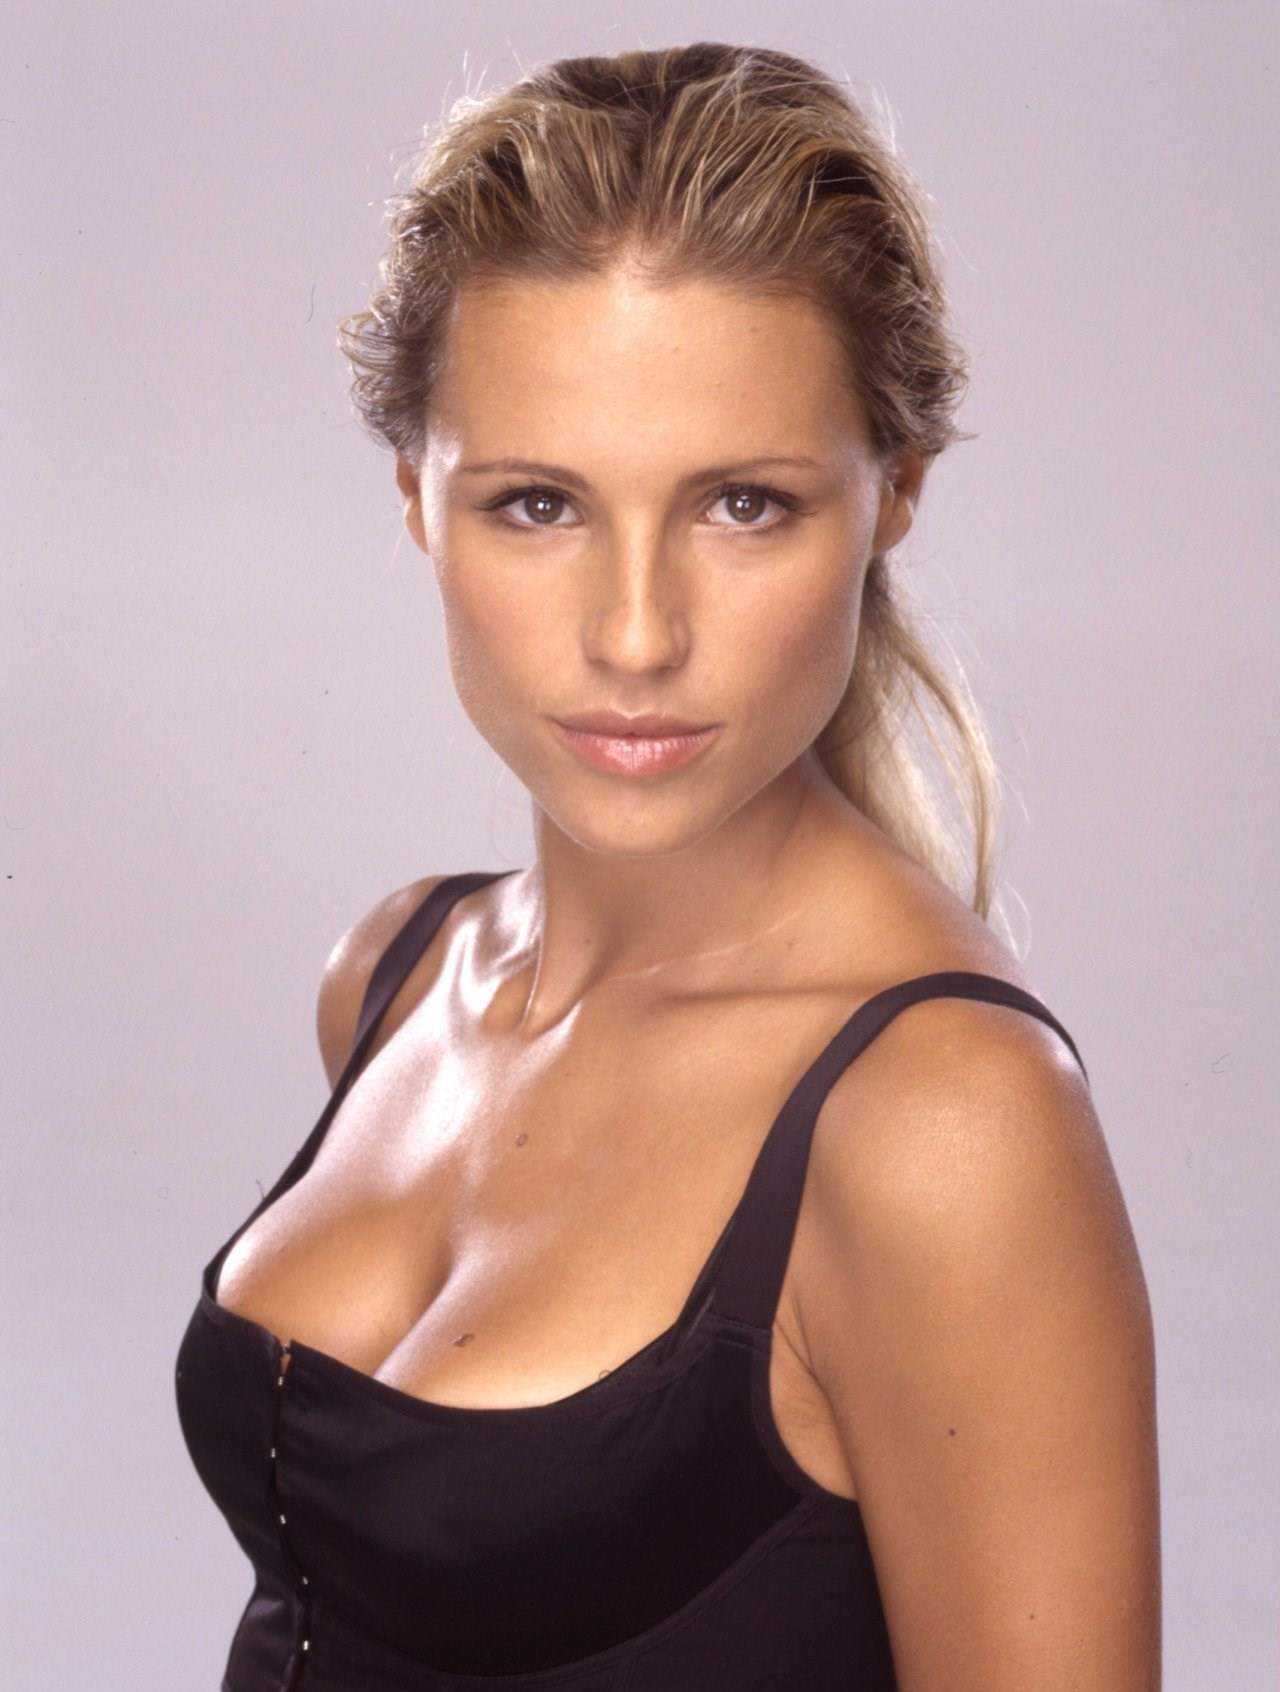 Michelle Hunziker nude (27 pictures) Sideboobs, Twitter, braless